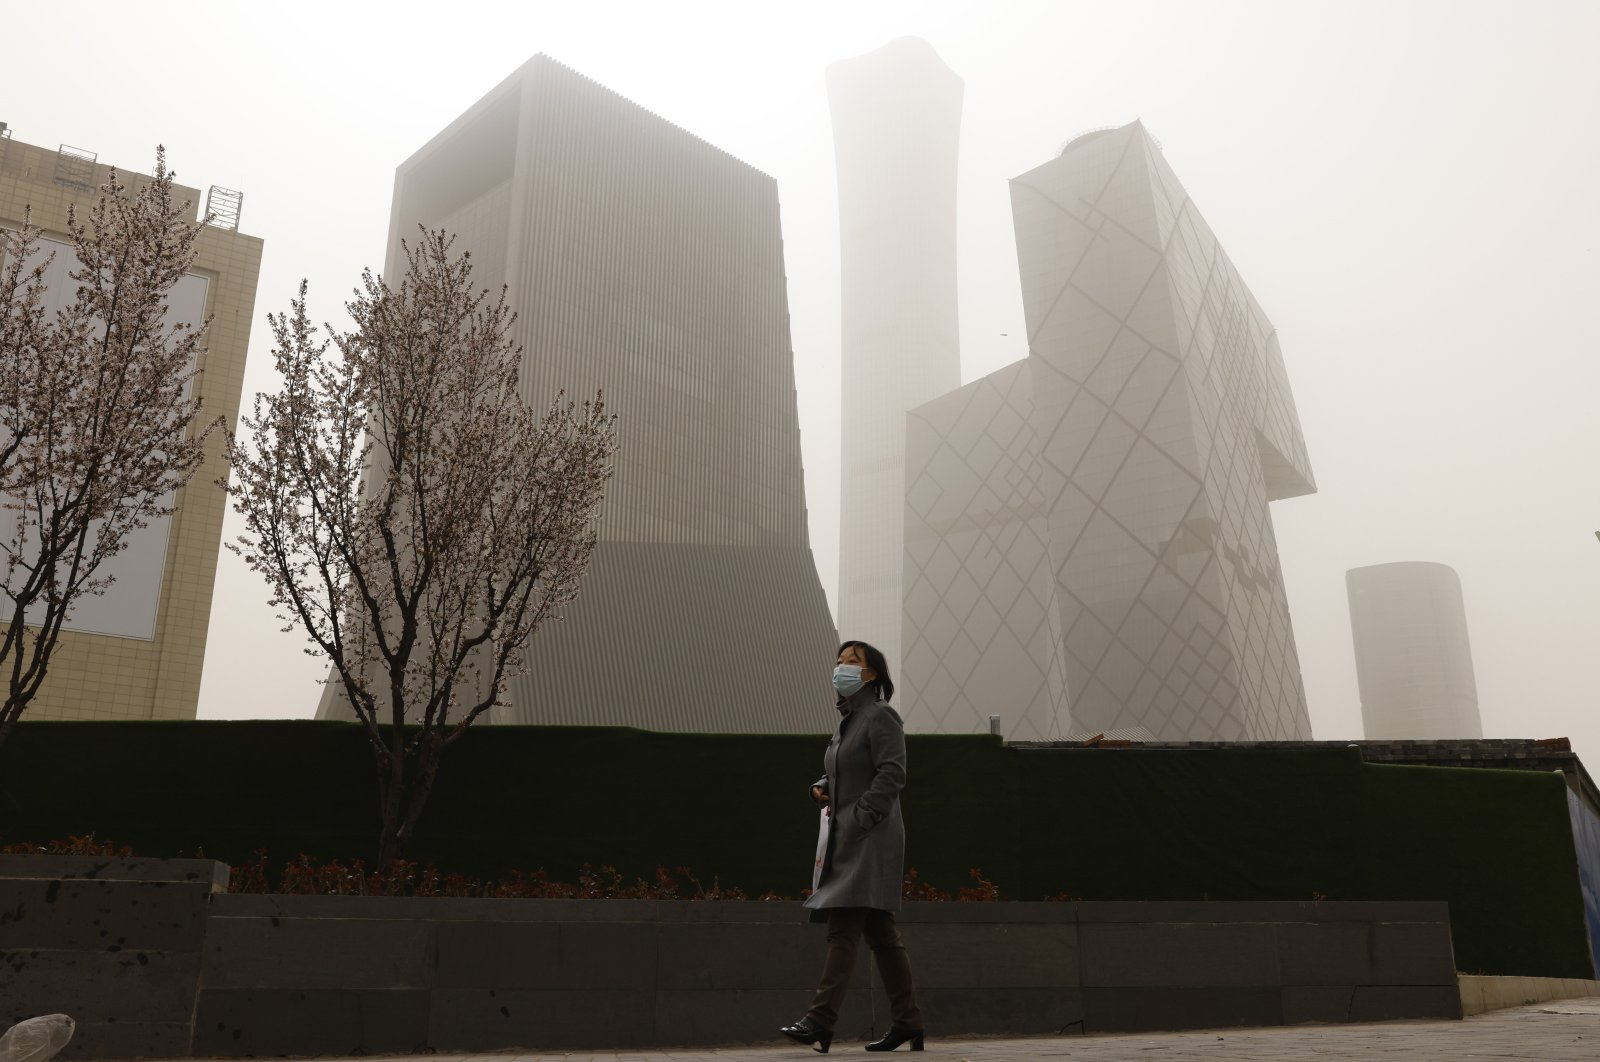 A woman walks near skyscrapers in the Central Business District during a sandstorm in Beijing, China, March 28, 2021. (AP Photo)